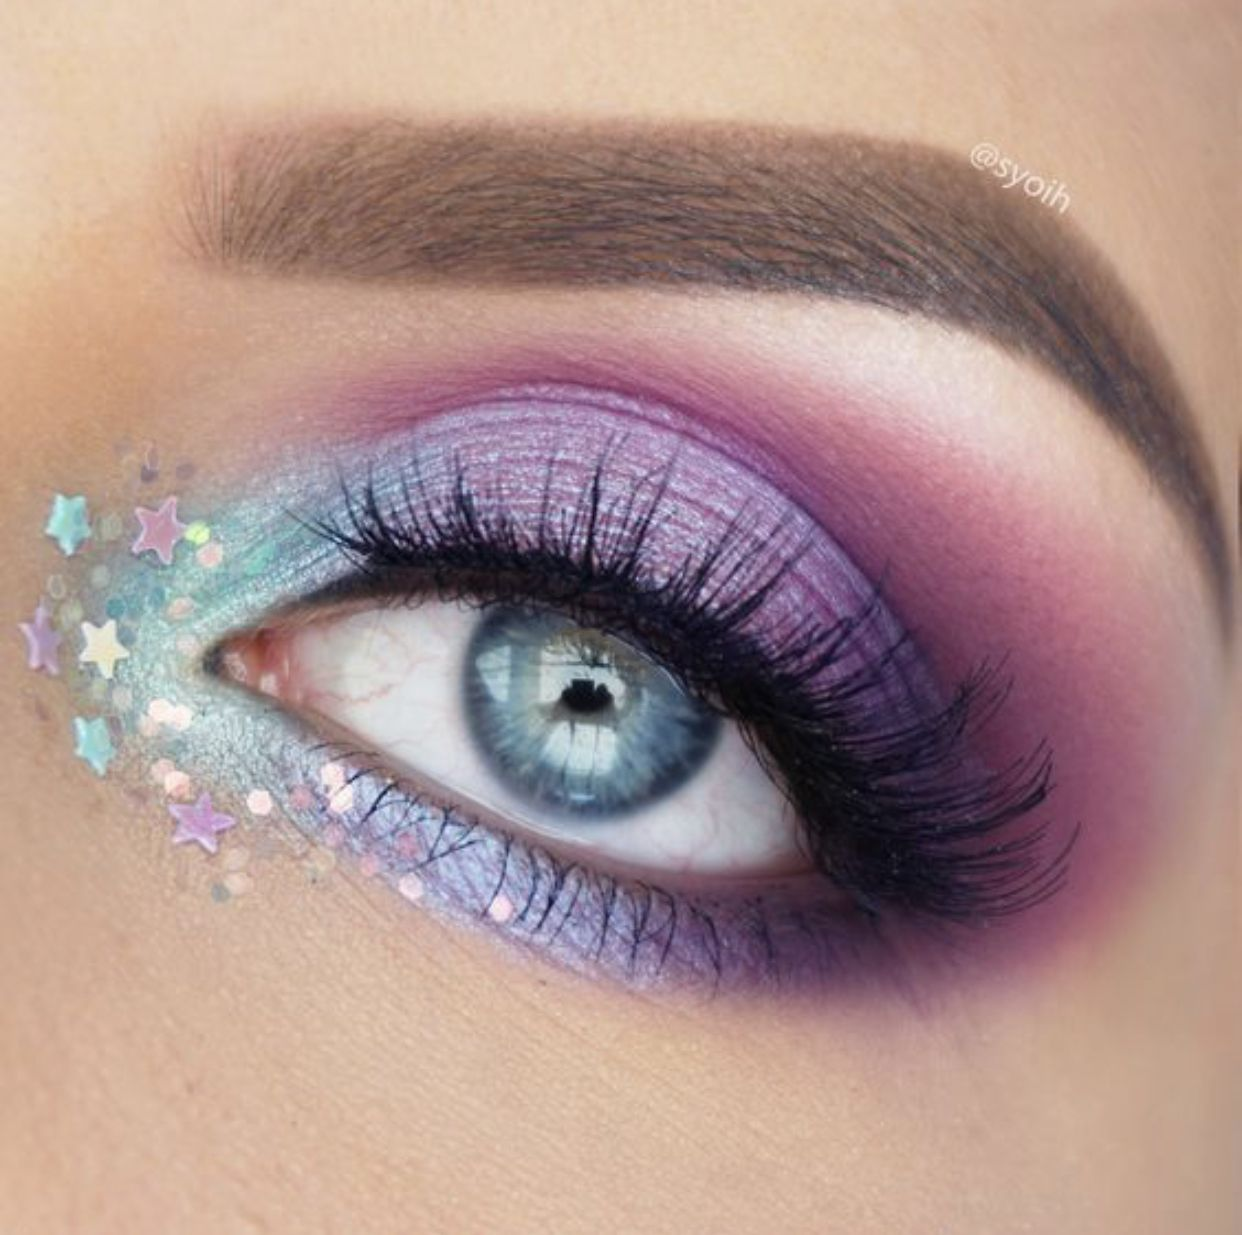 Unicorn eye makeup!